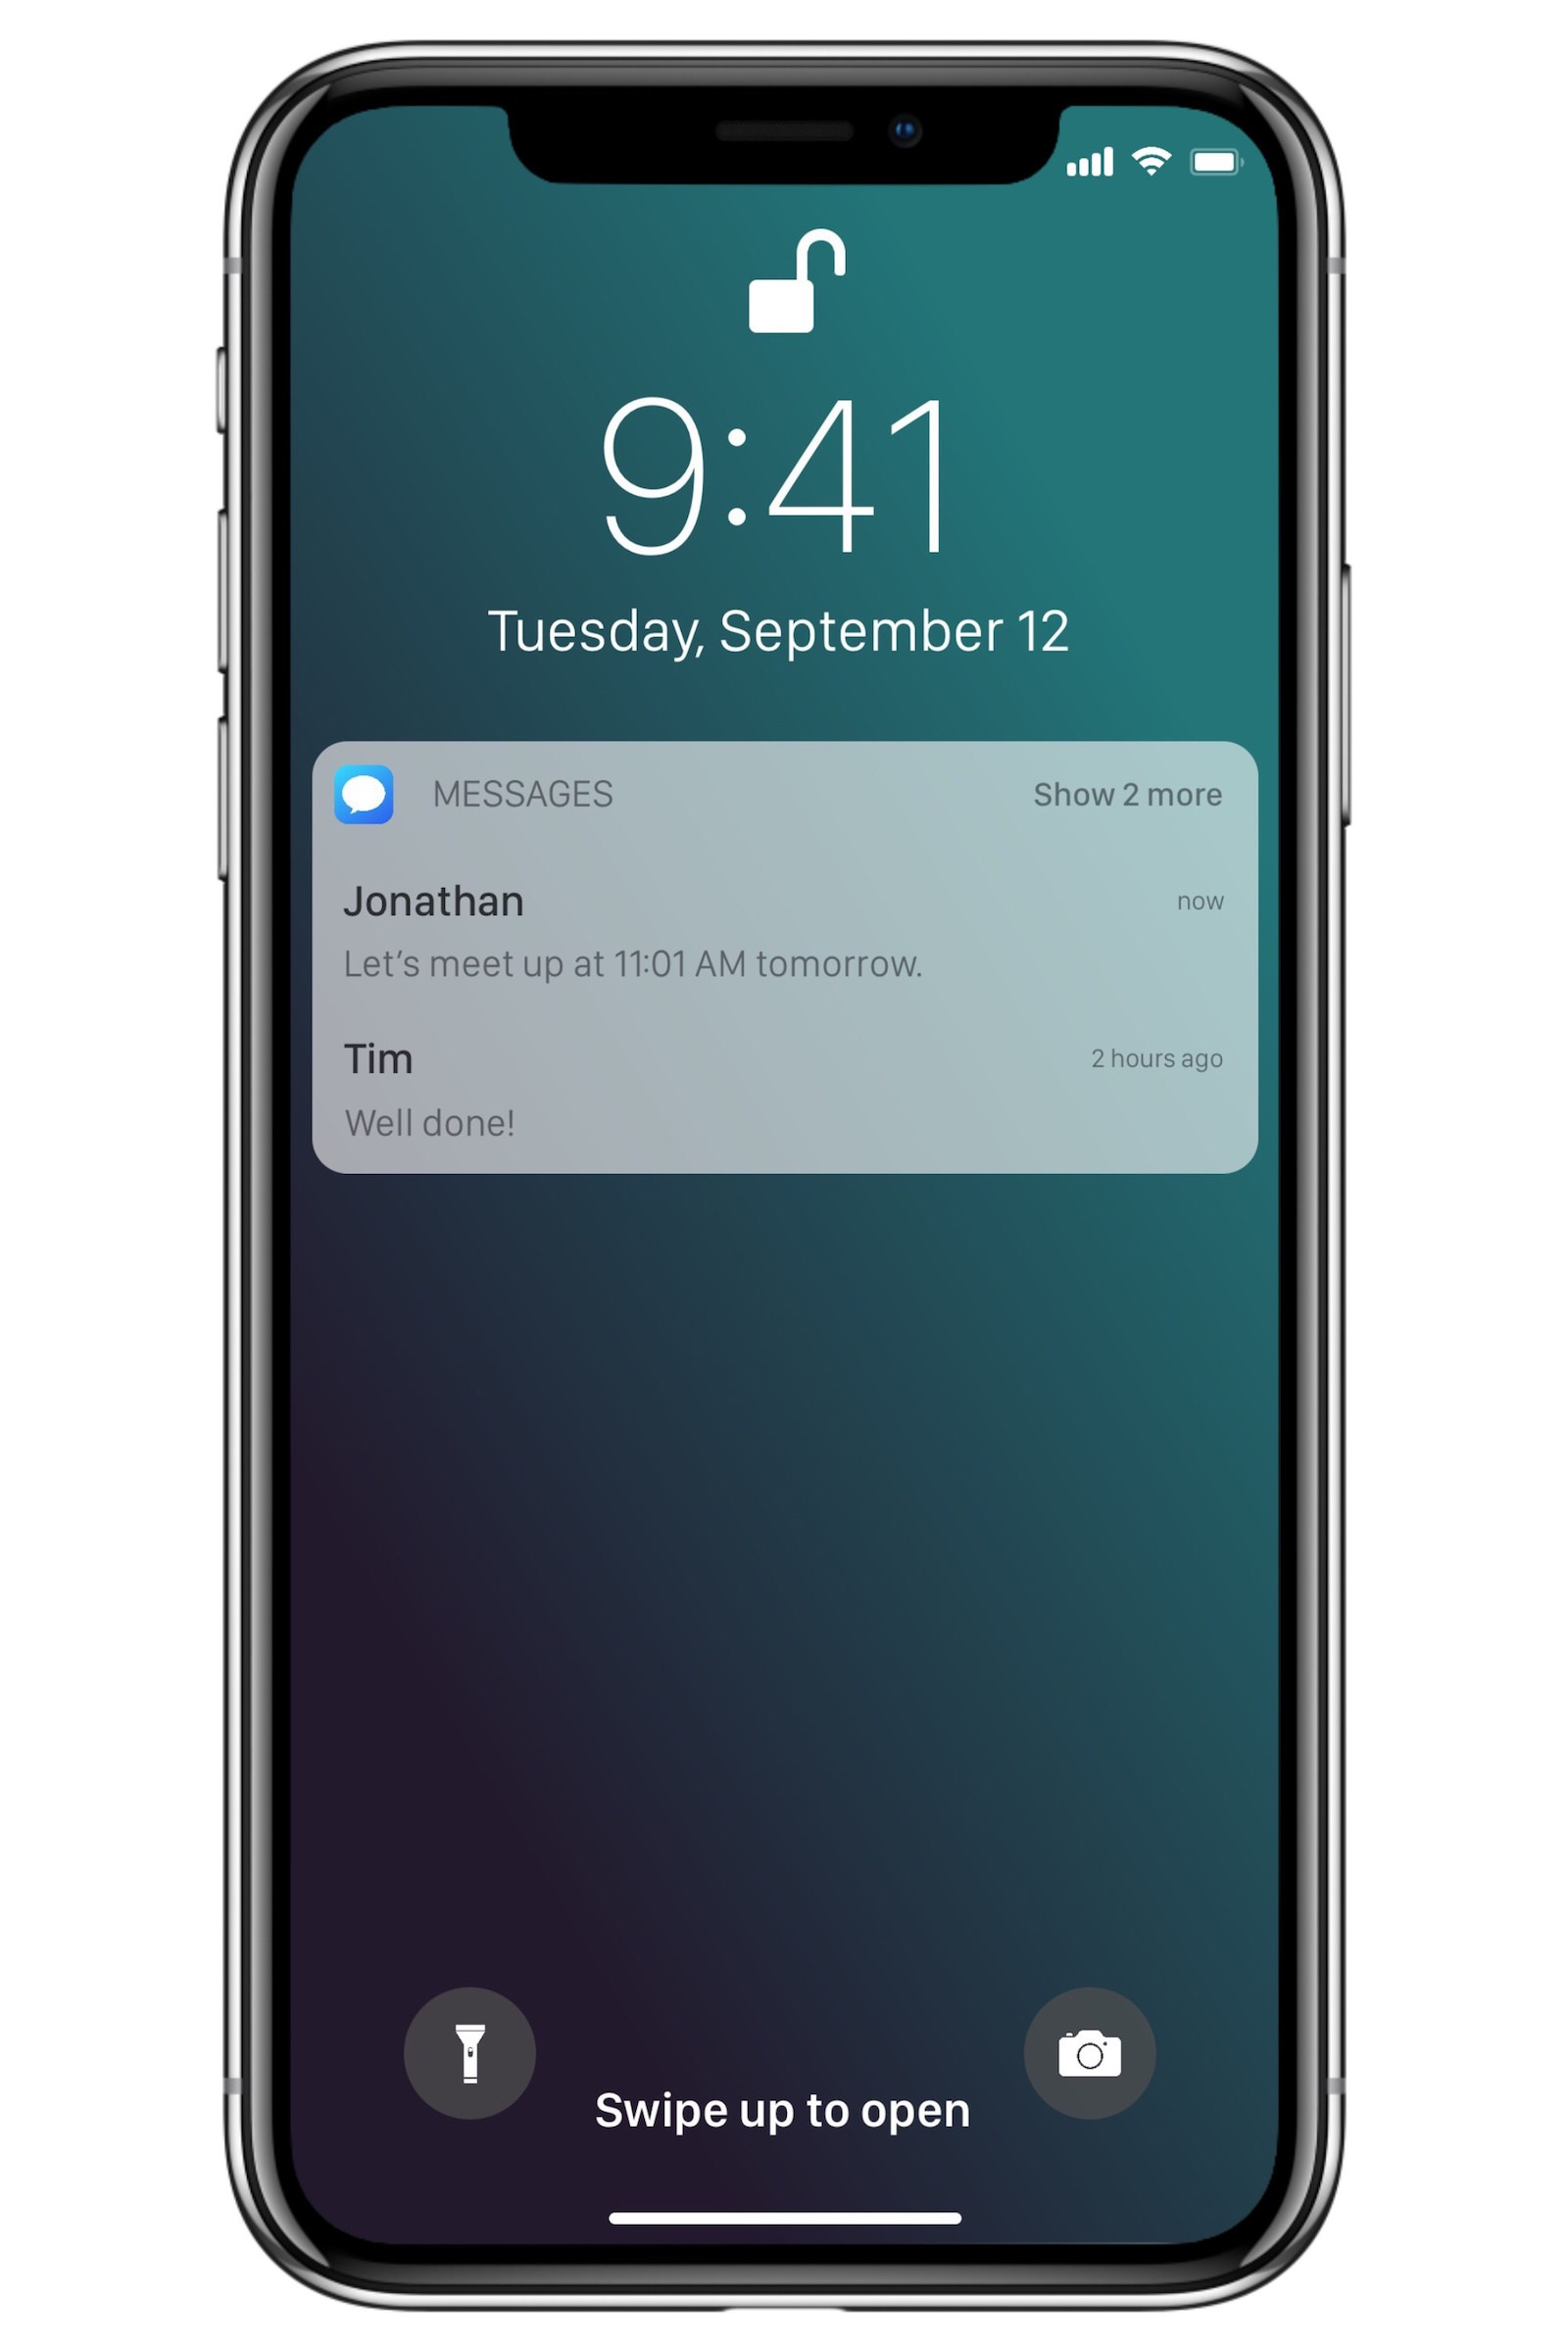 ios12-concept-images-14